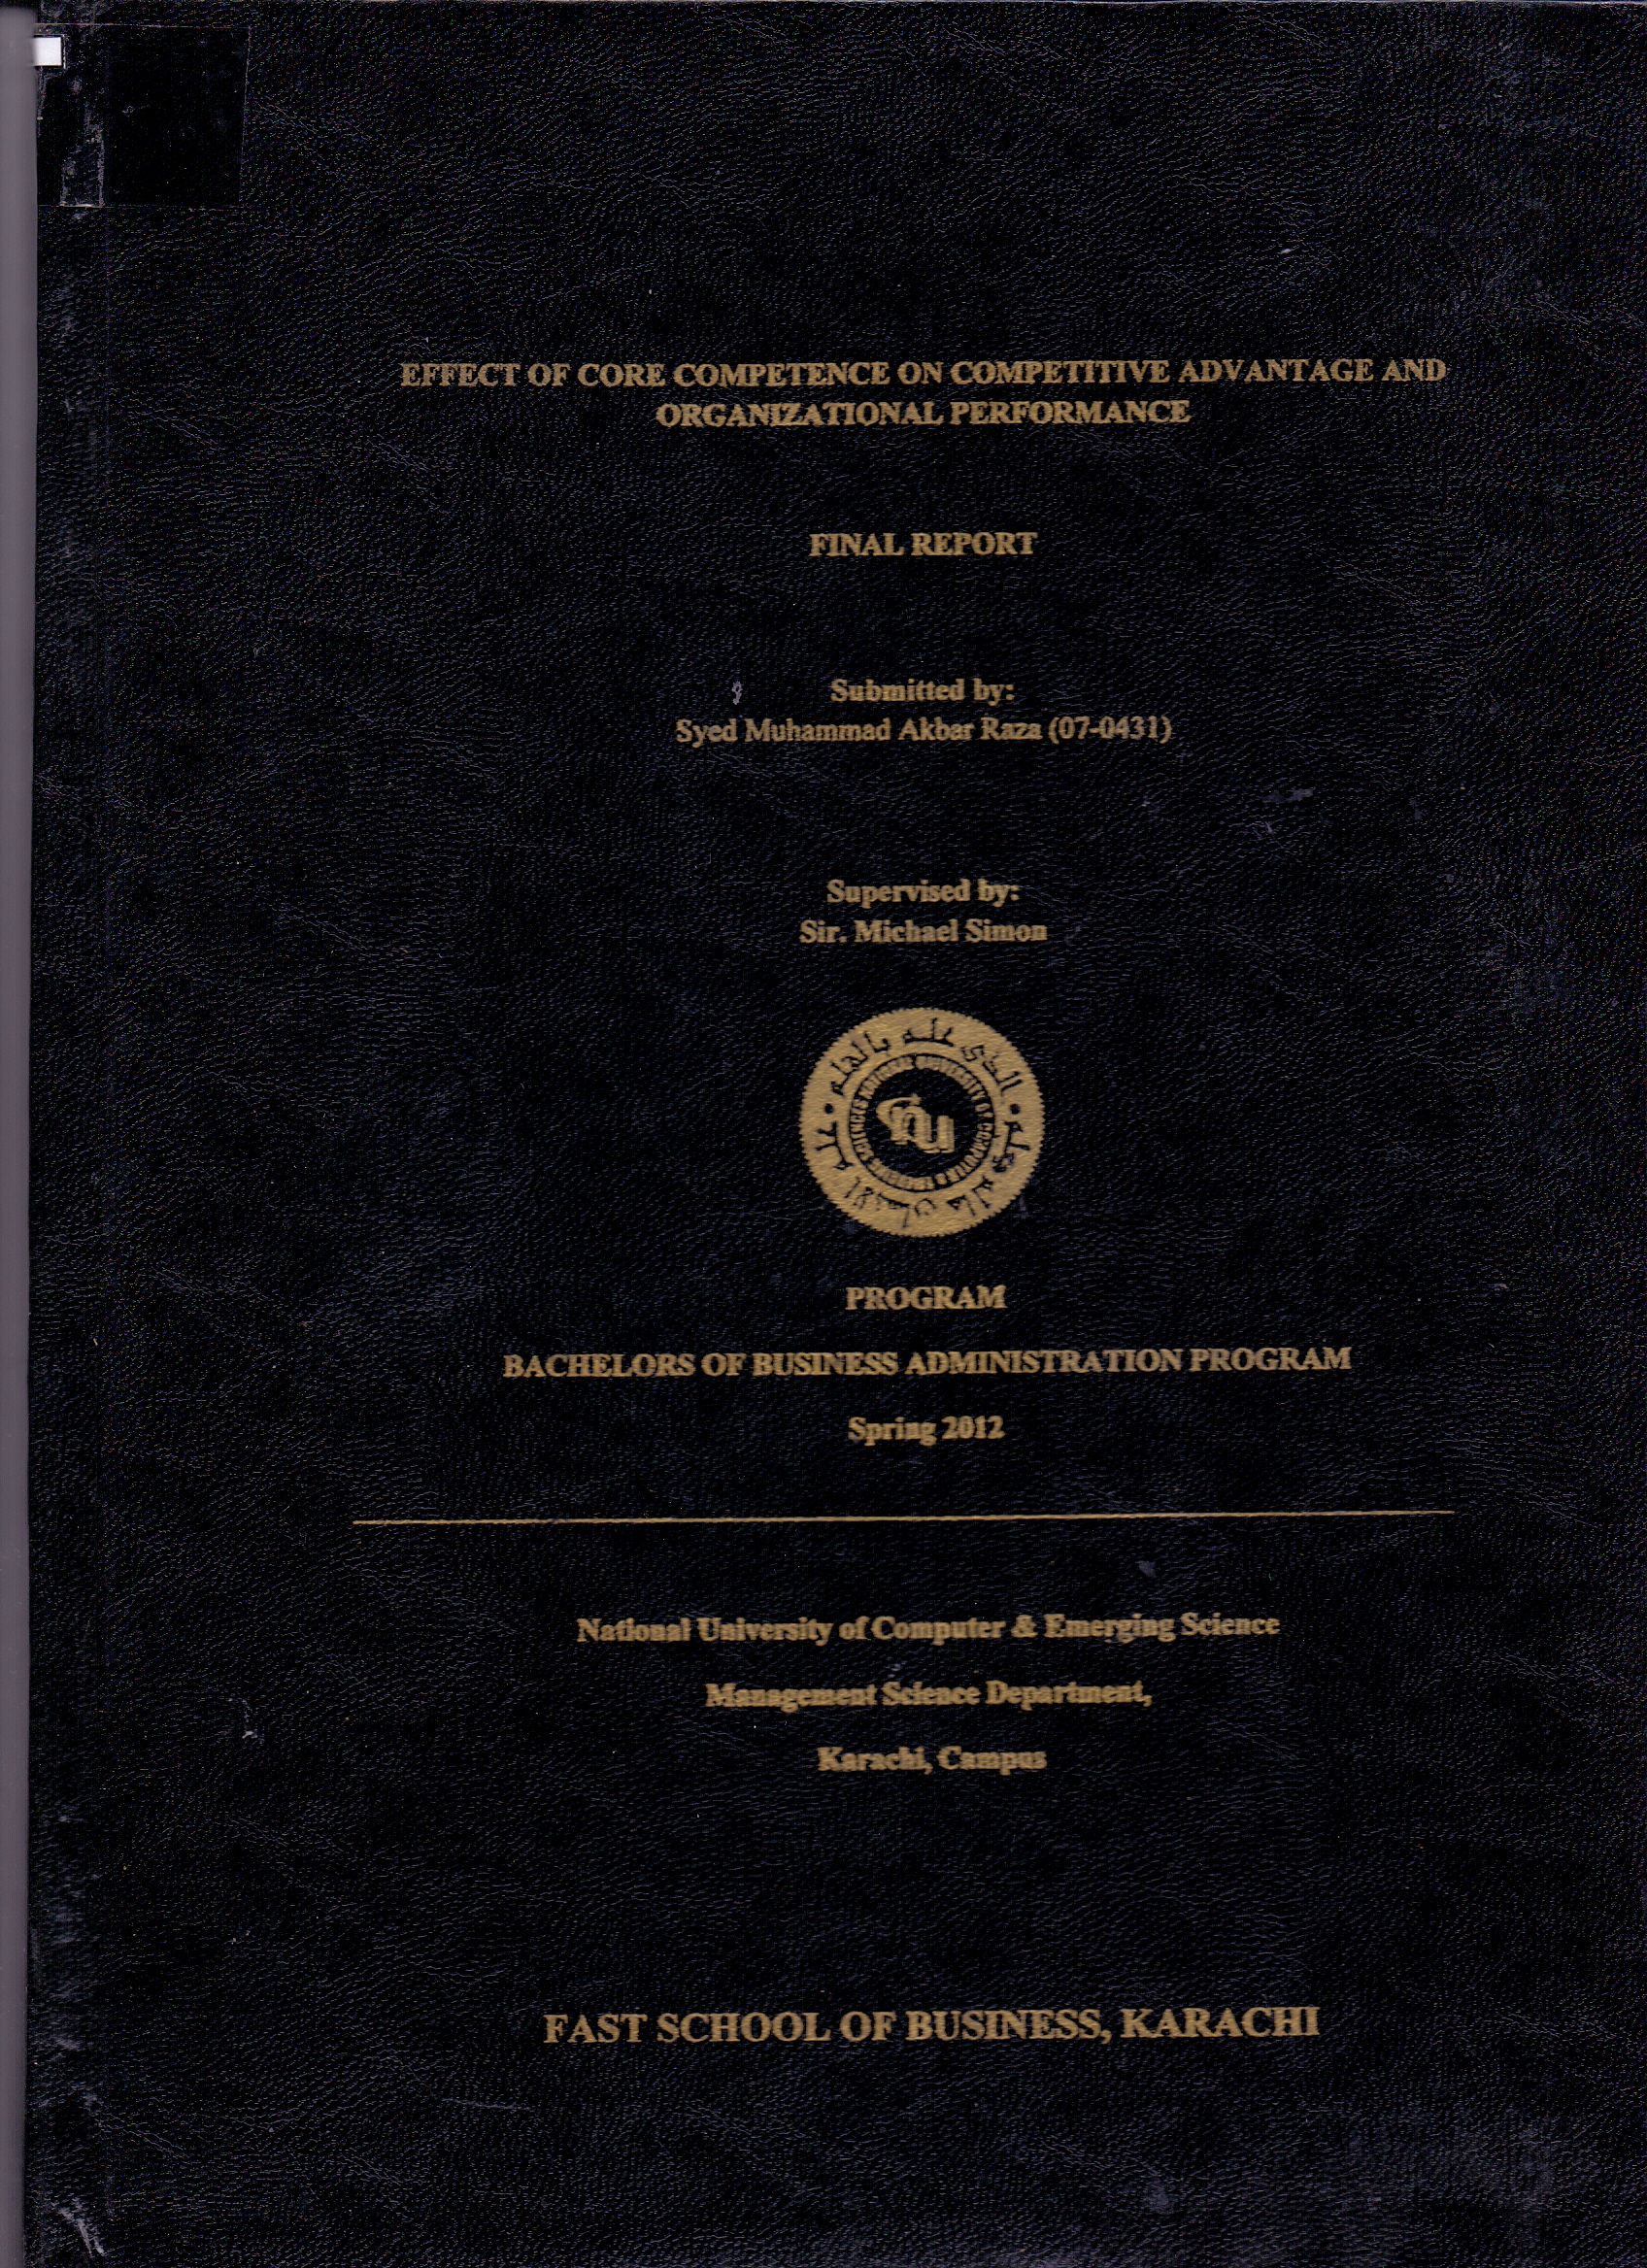 Effect of Competence on Competitive Advantage and Organizational Performance  (07-0431)